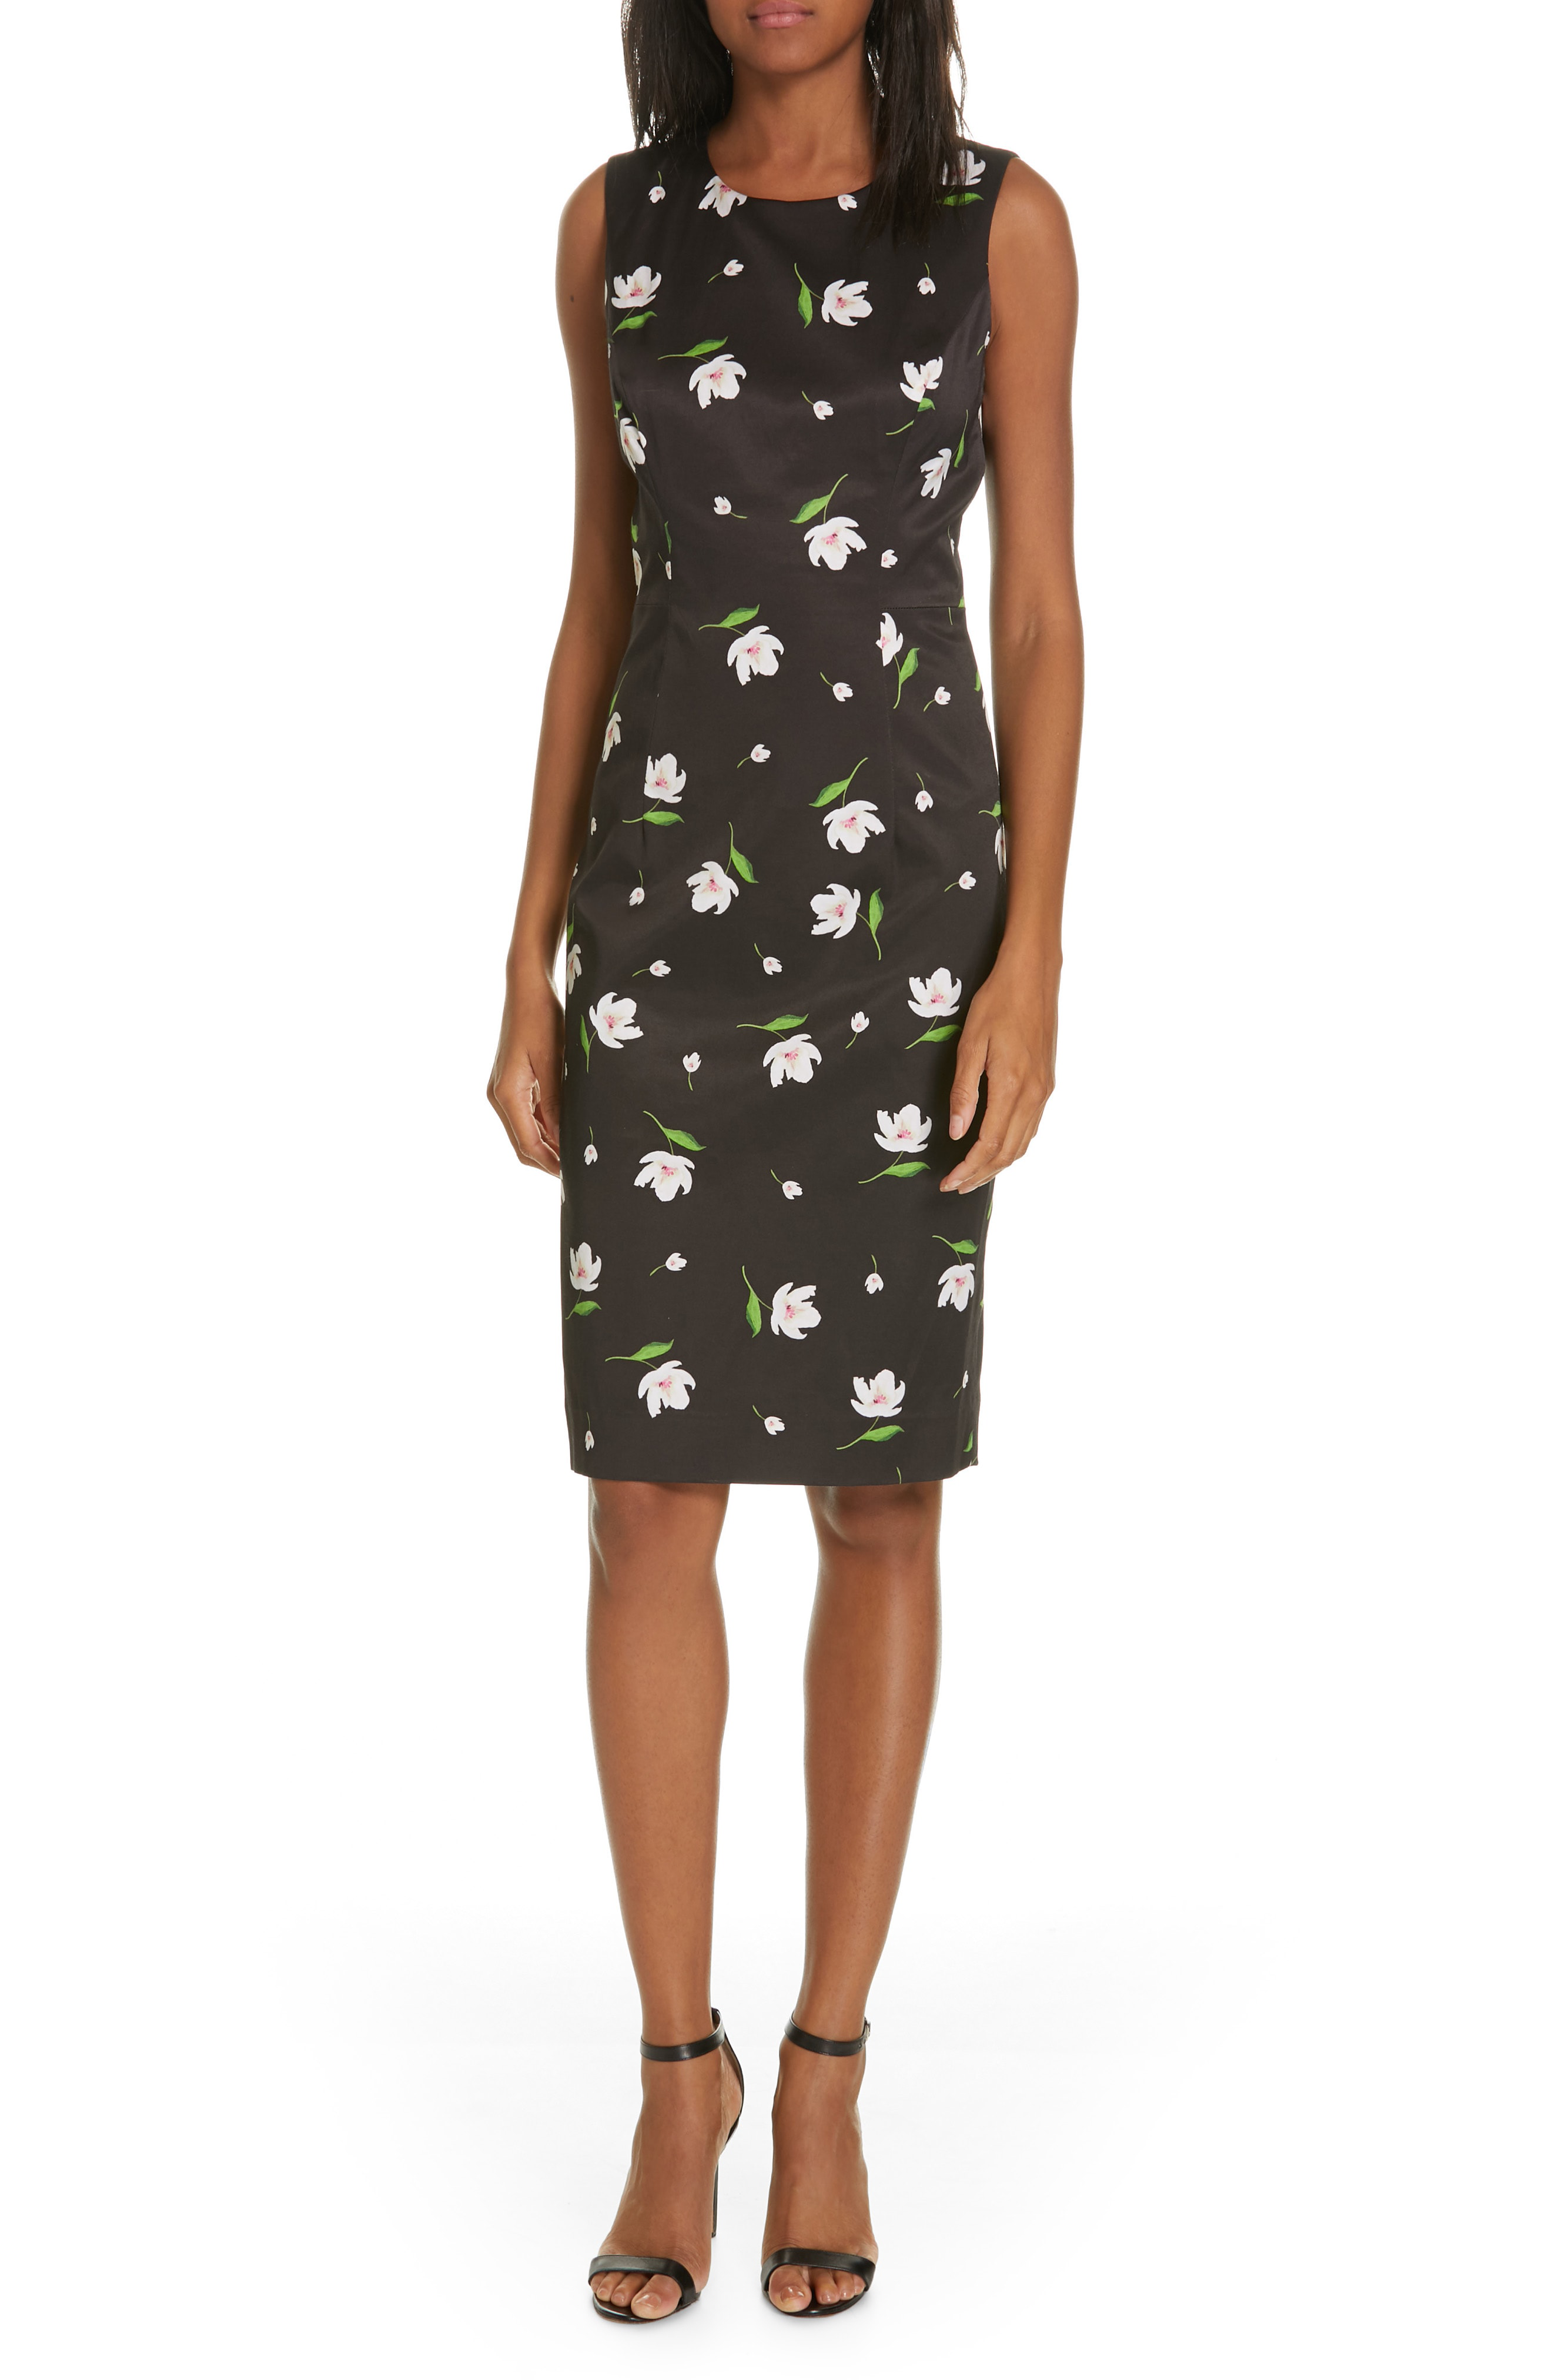 39f4c9392a1 Milly Kendra Floral Print Sheath Dress In Black  White